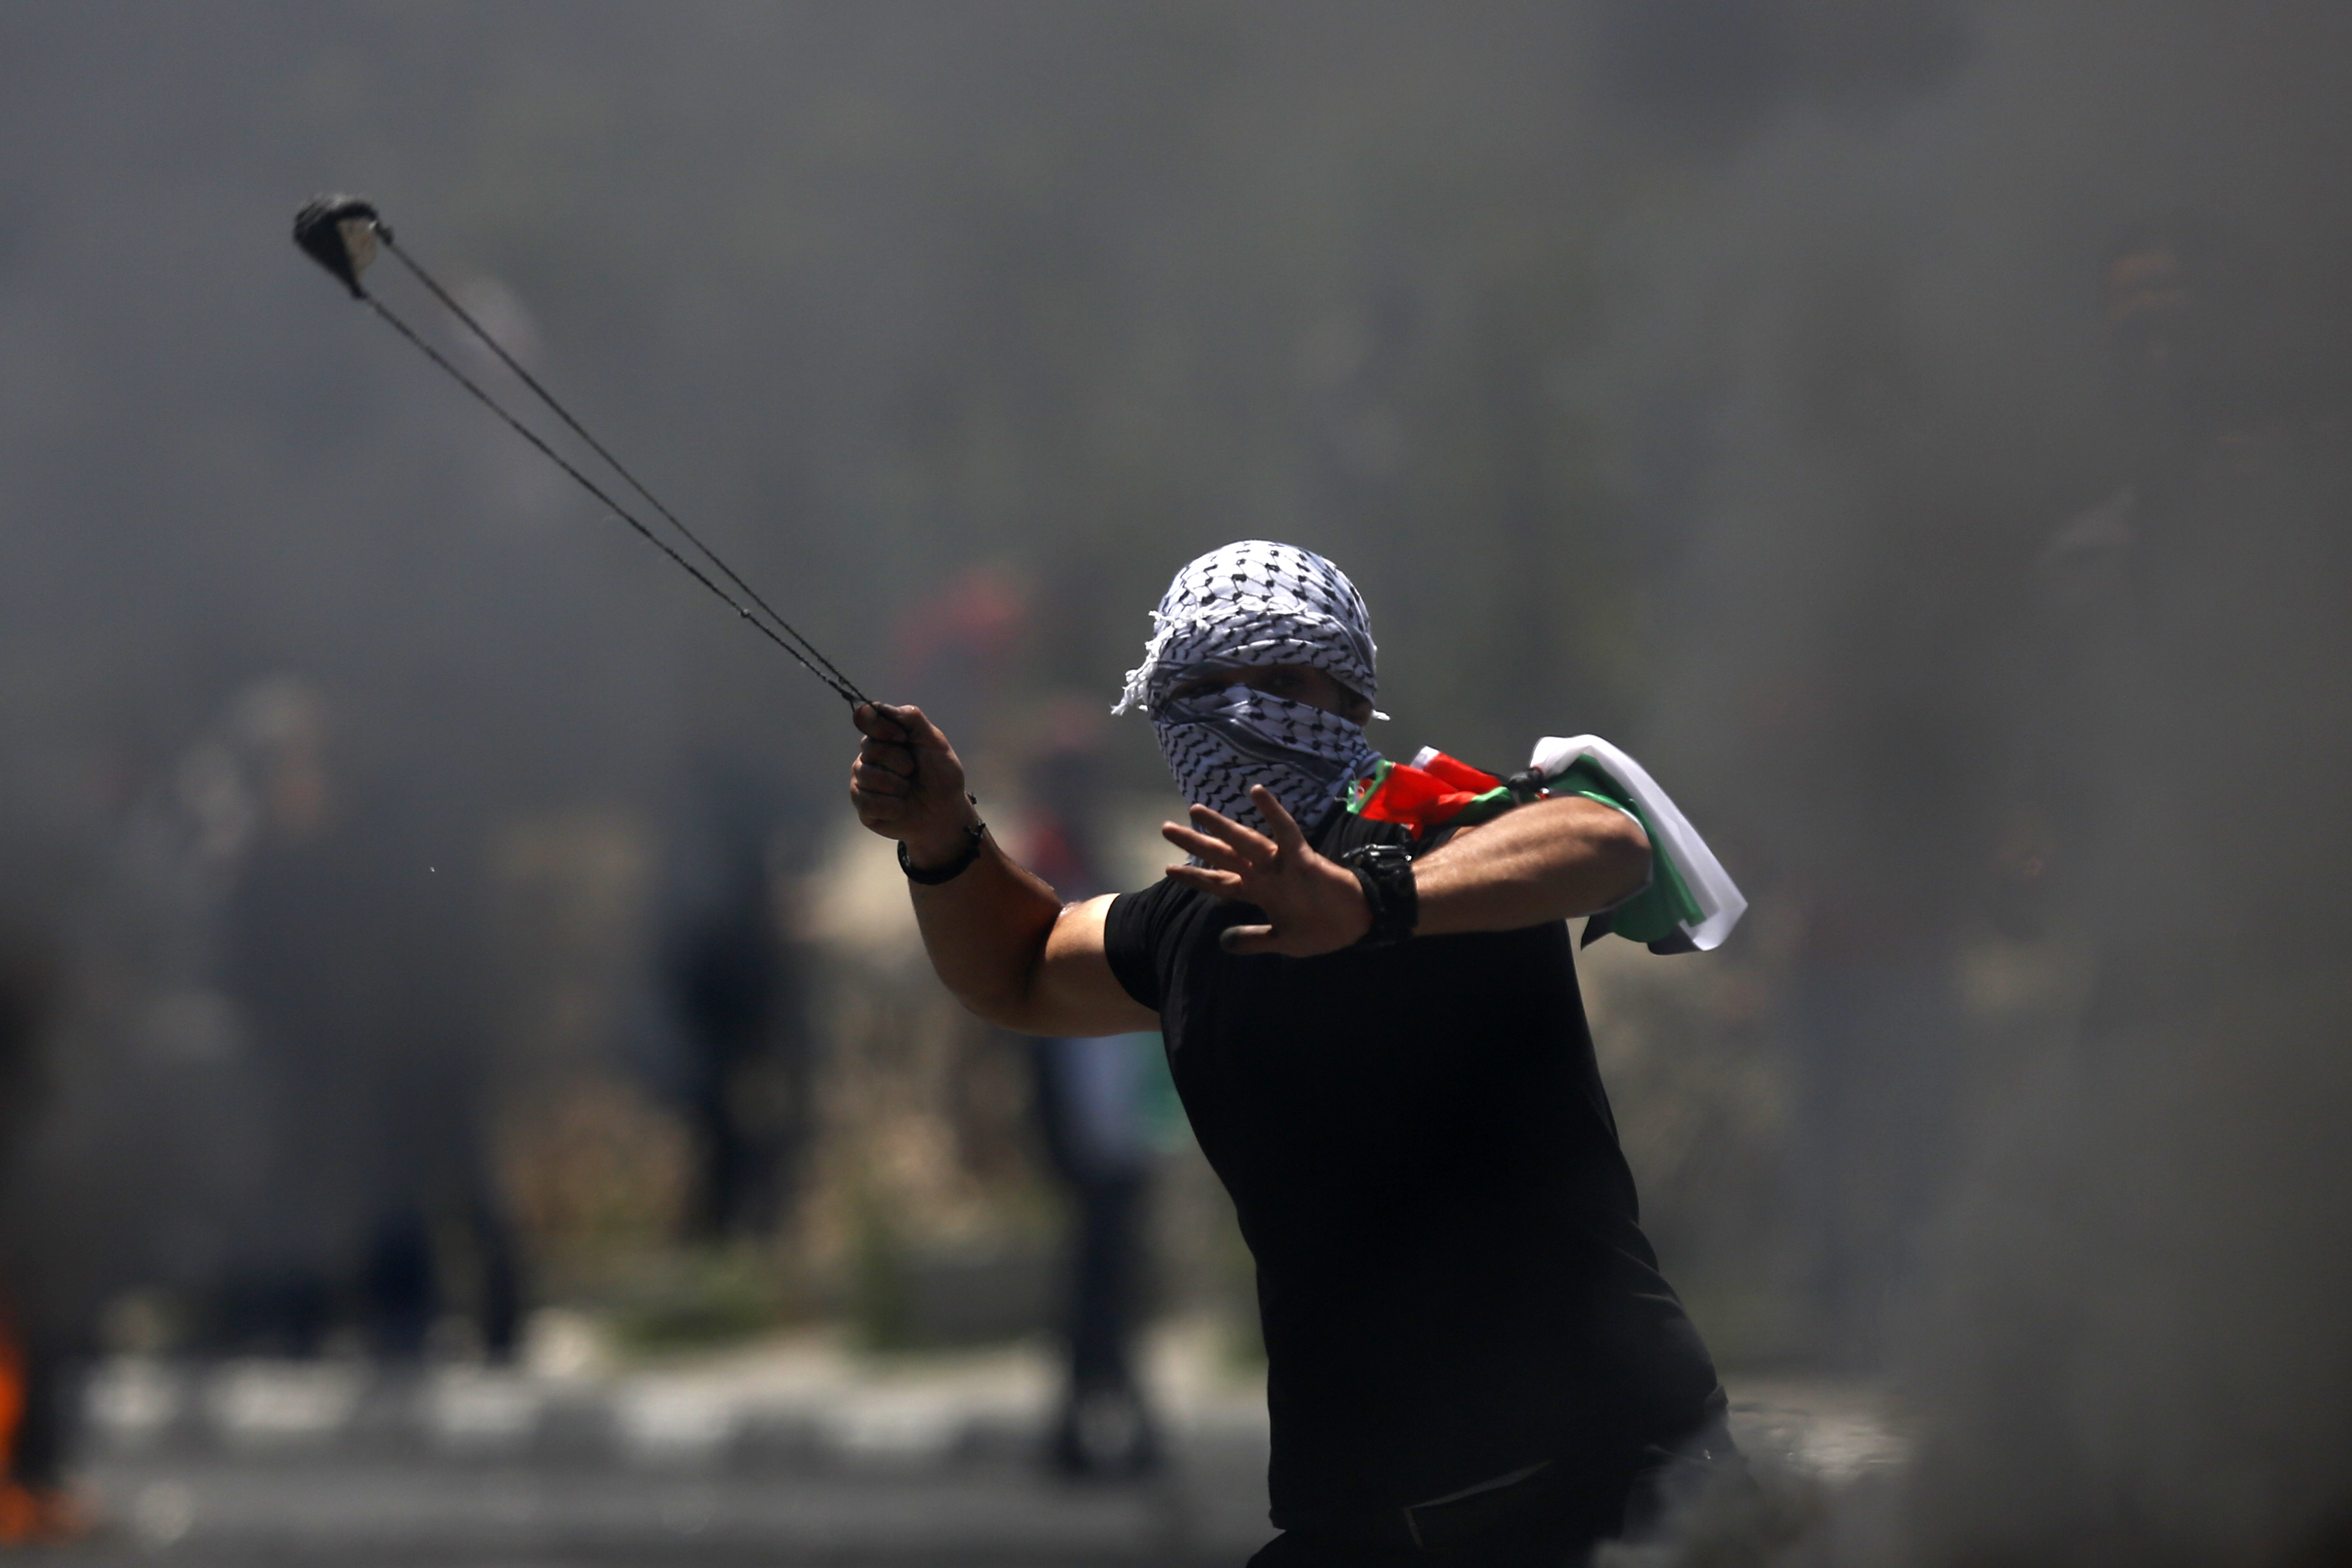 A Palestinian protester hurls a stone during clashes with Israeli forces after a rally to mark the 70th anniversary of what Palestinians call their